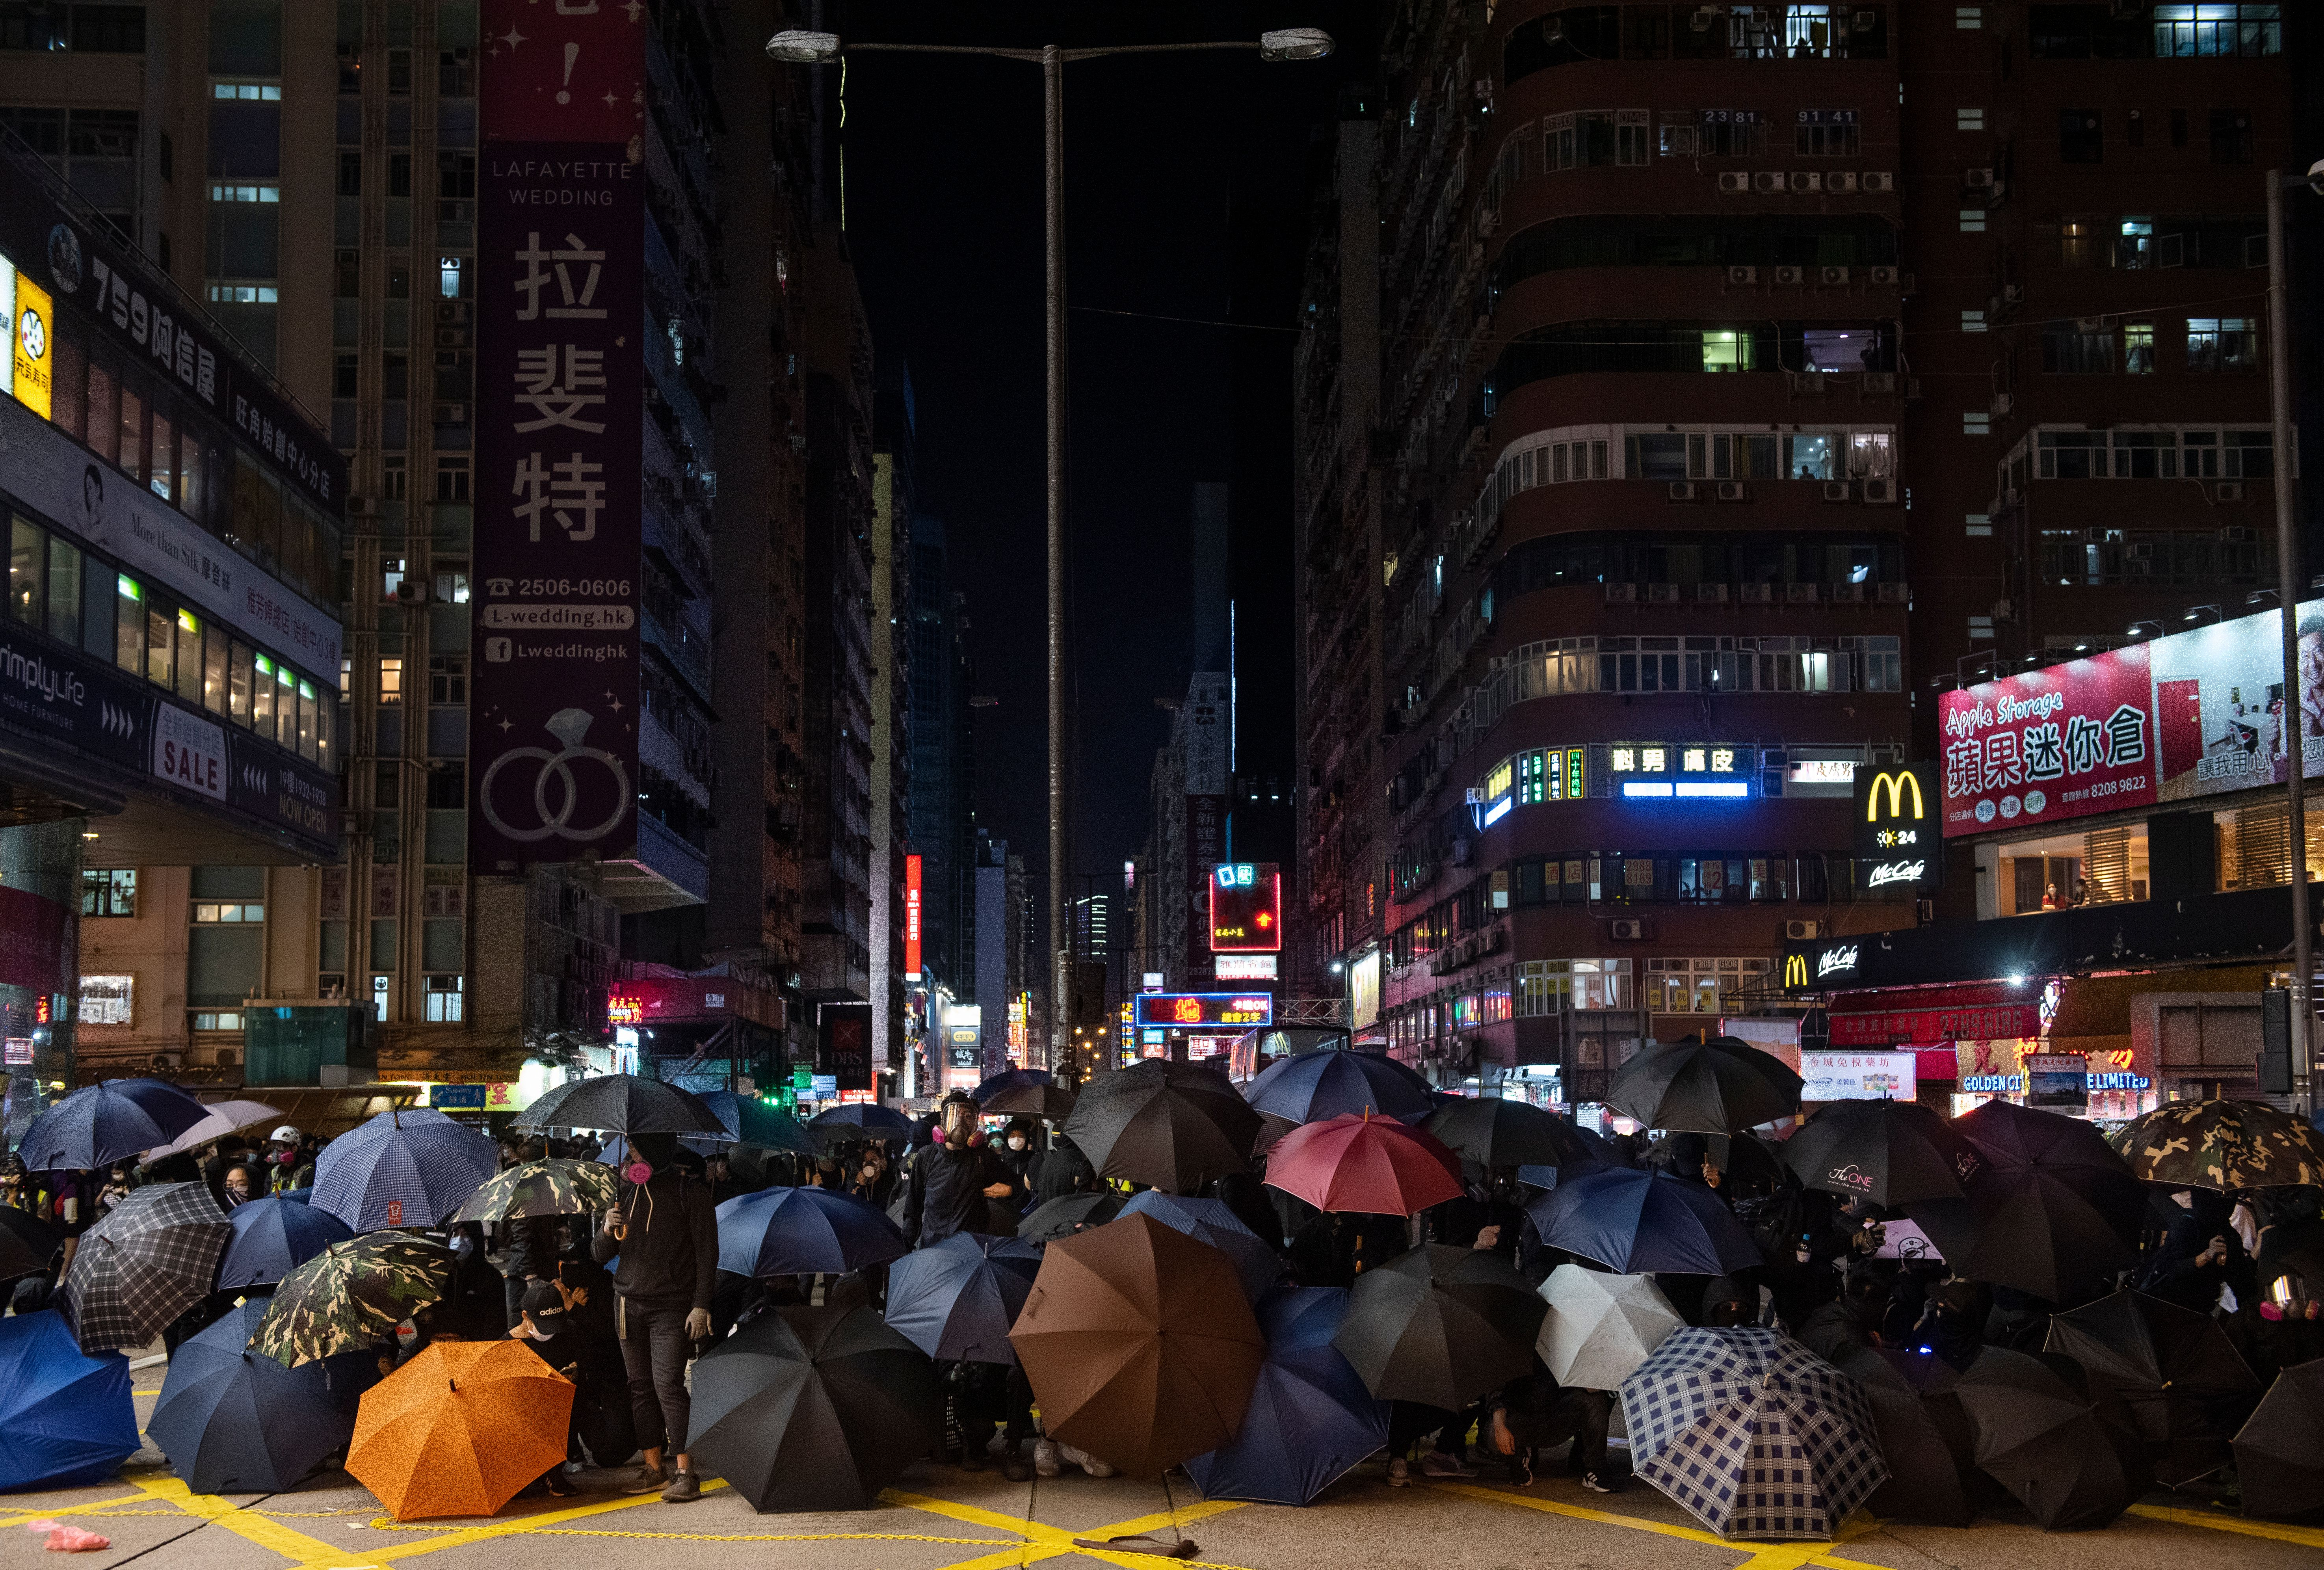 Protesters set up a roadblock with umbrellas during the most recent demonstration.